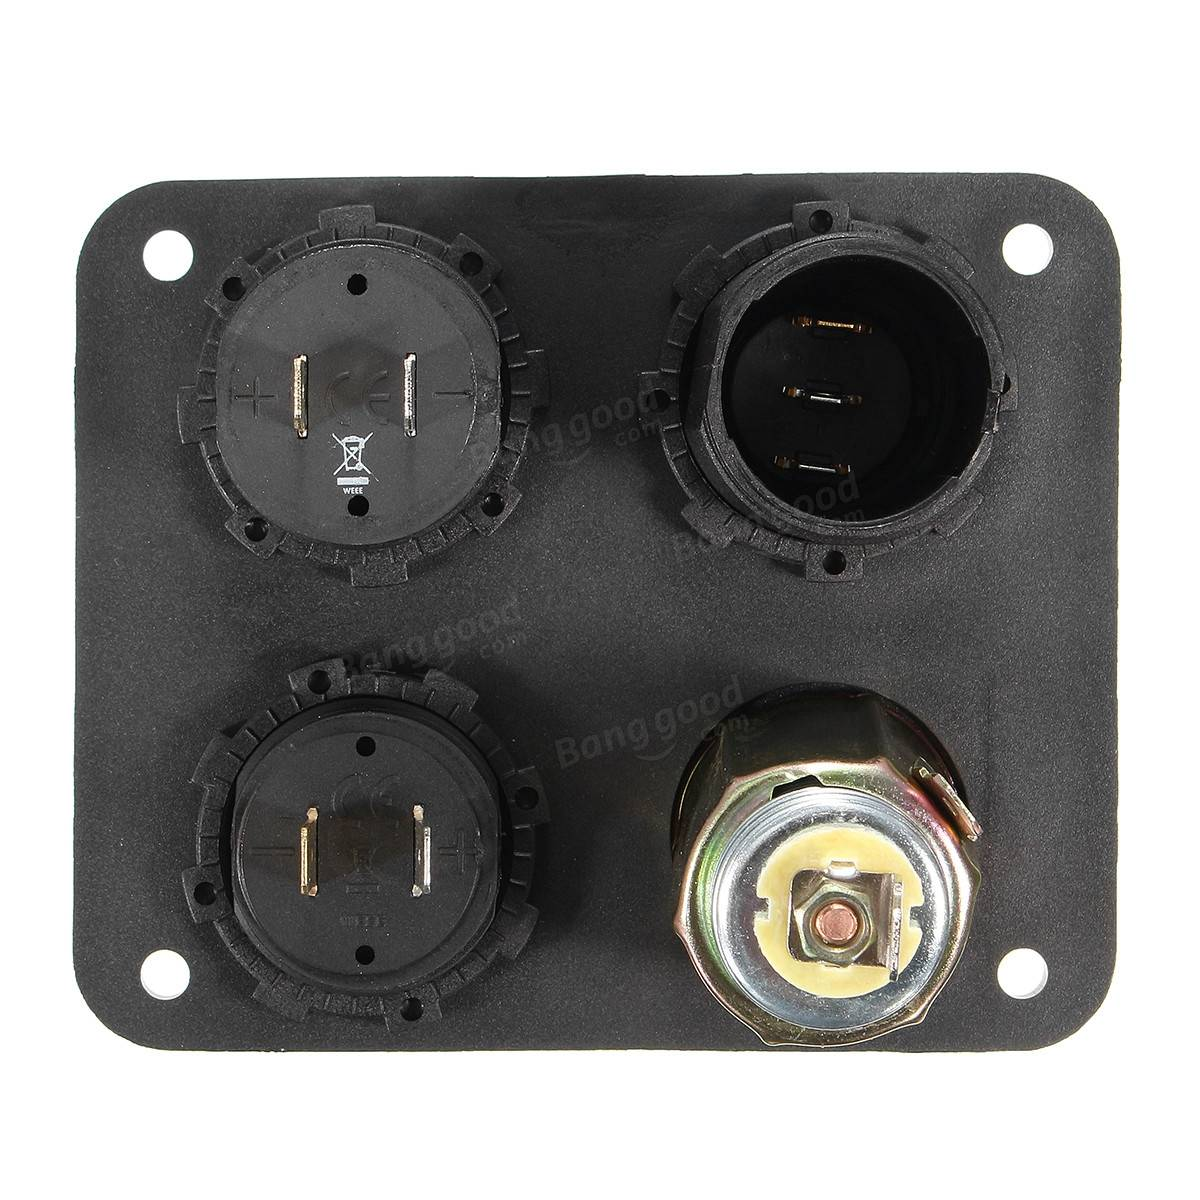 fb825a02 6711 4959 87d8 af0d23700f75 4 hole panel switch marine boat auto rv 12v power socket volt  at creativeand.co